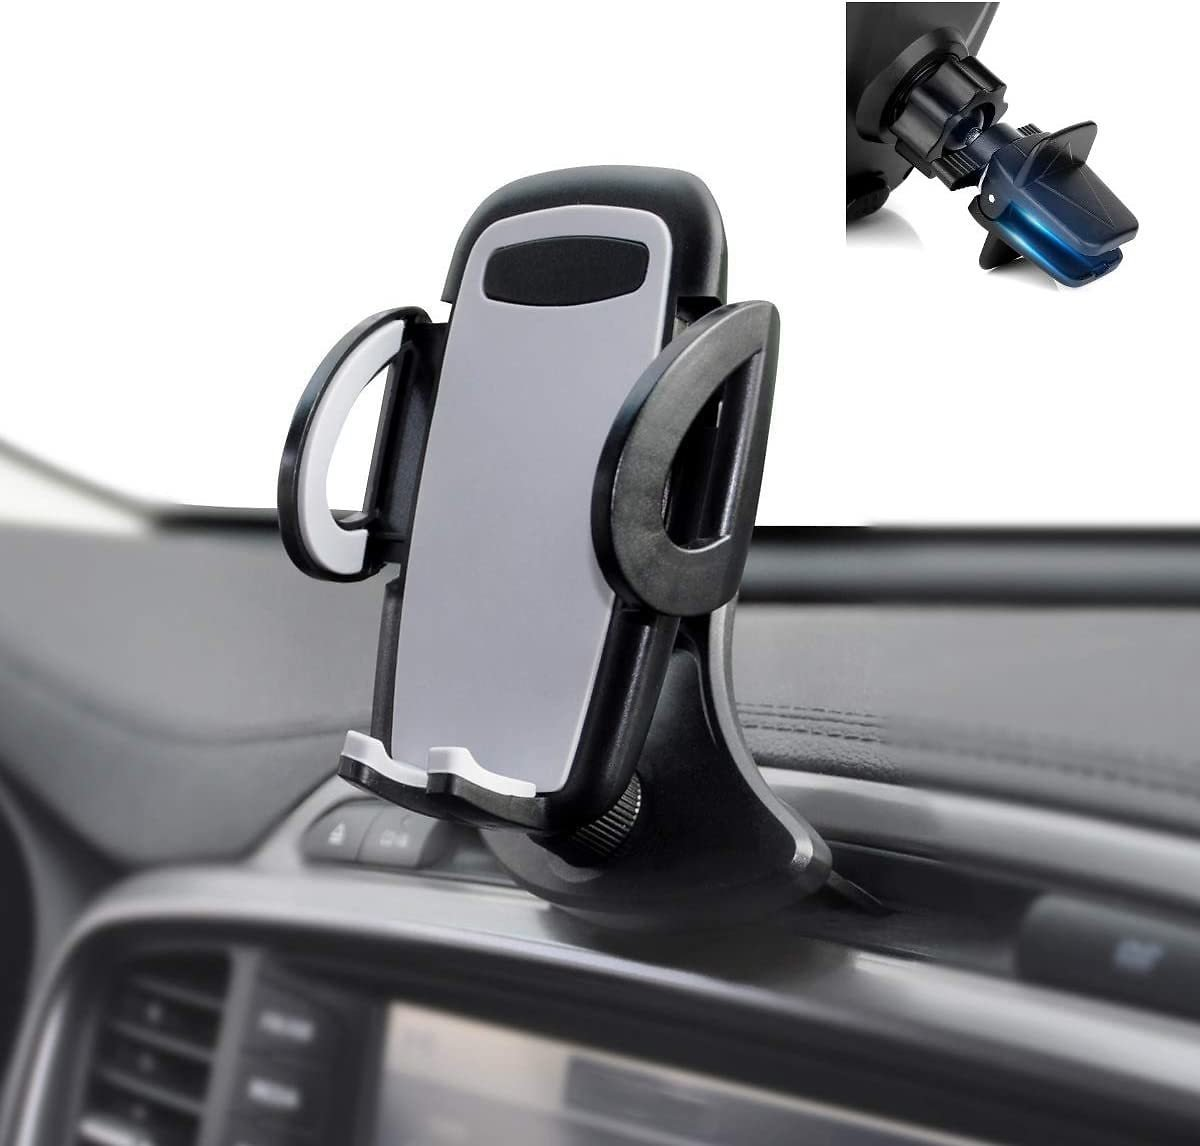 (Only $9.34) Universal CD Slot & Air Vent Car Phone Holder Cradle Mount for iPhone Samsung Other Cell Phones